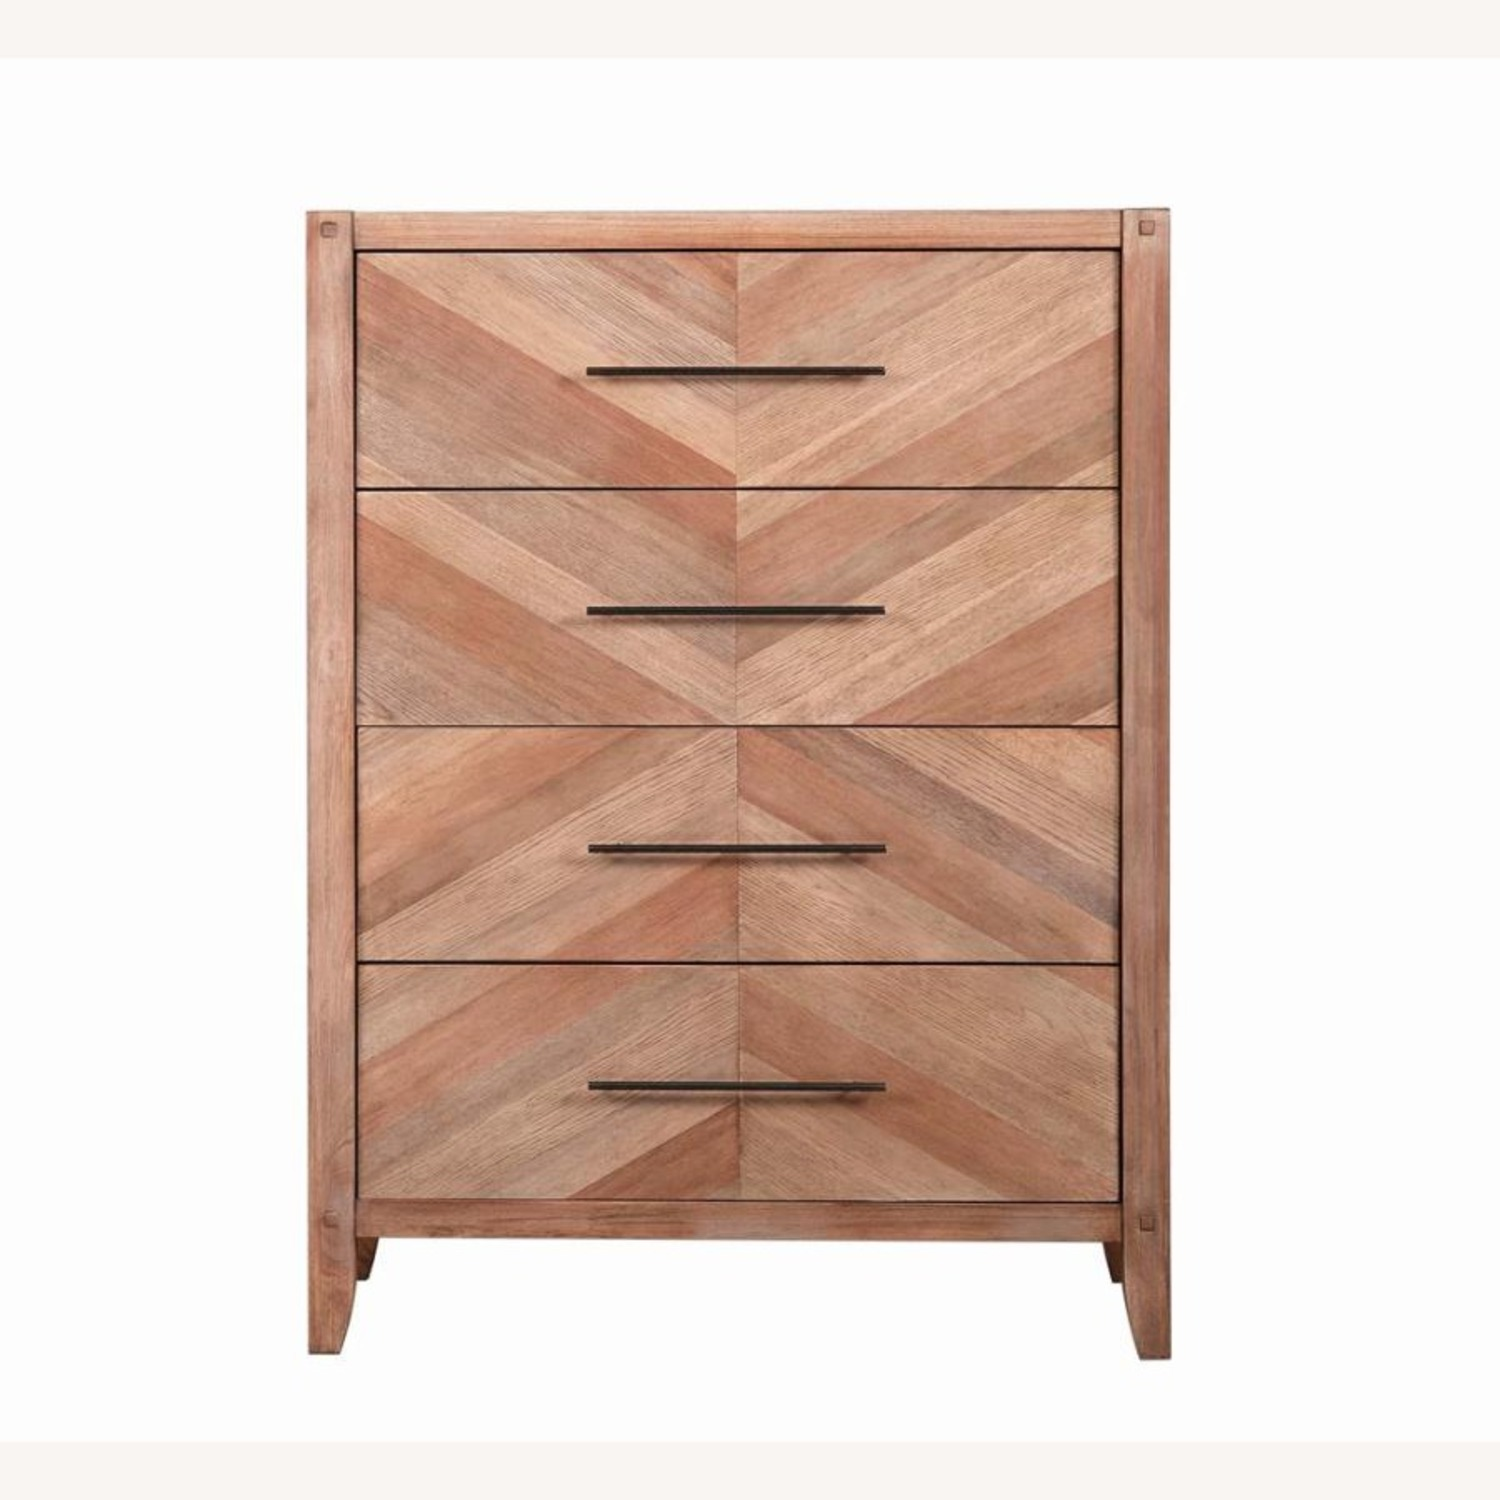 Chest in White Wash Natural Finish w/ Long Handles - image-2